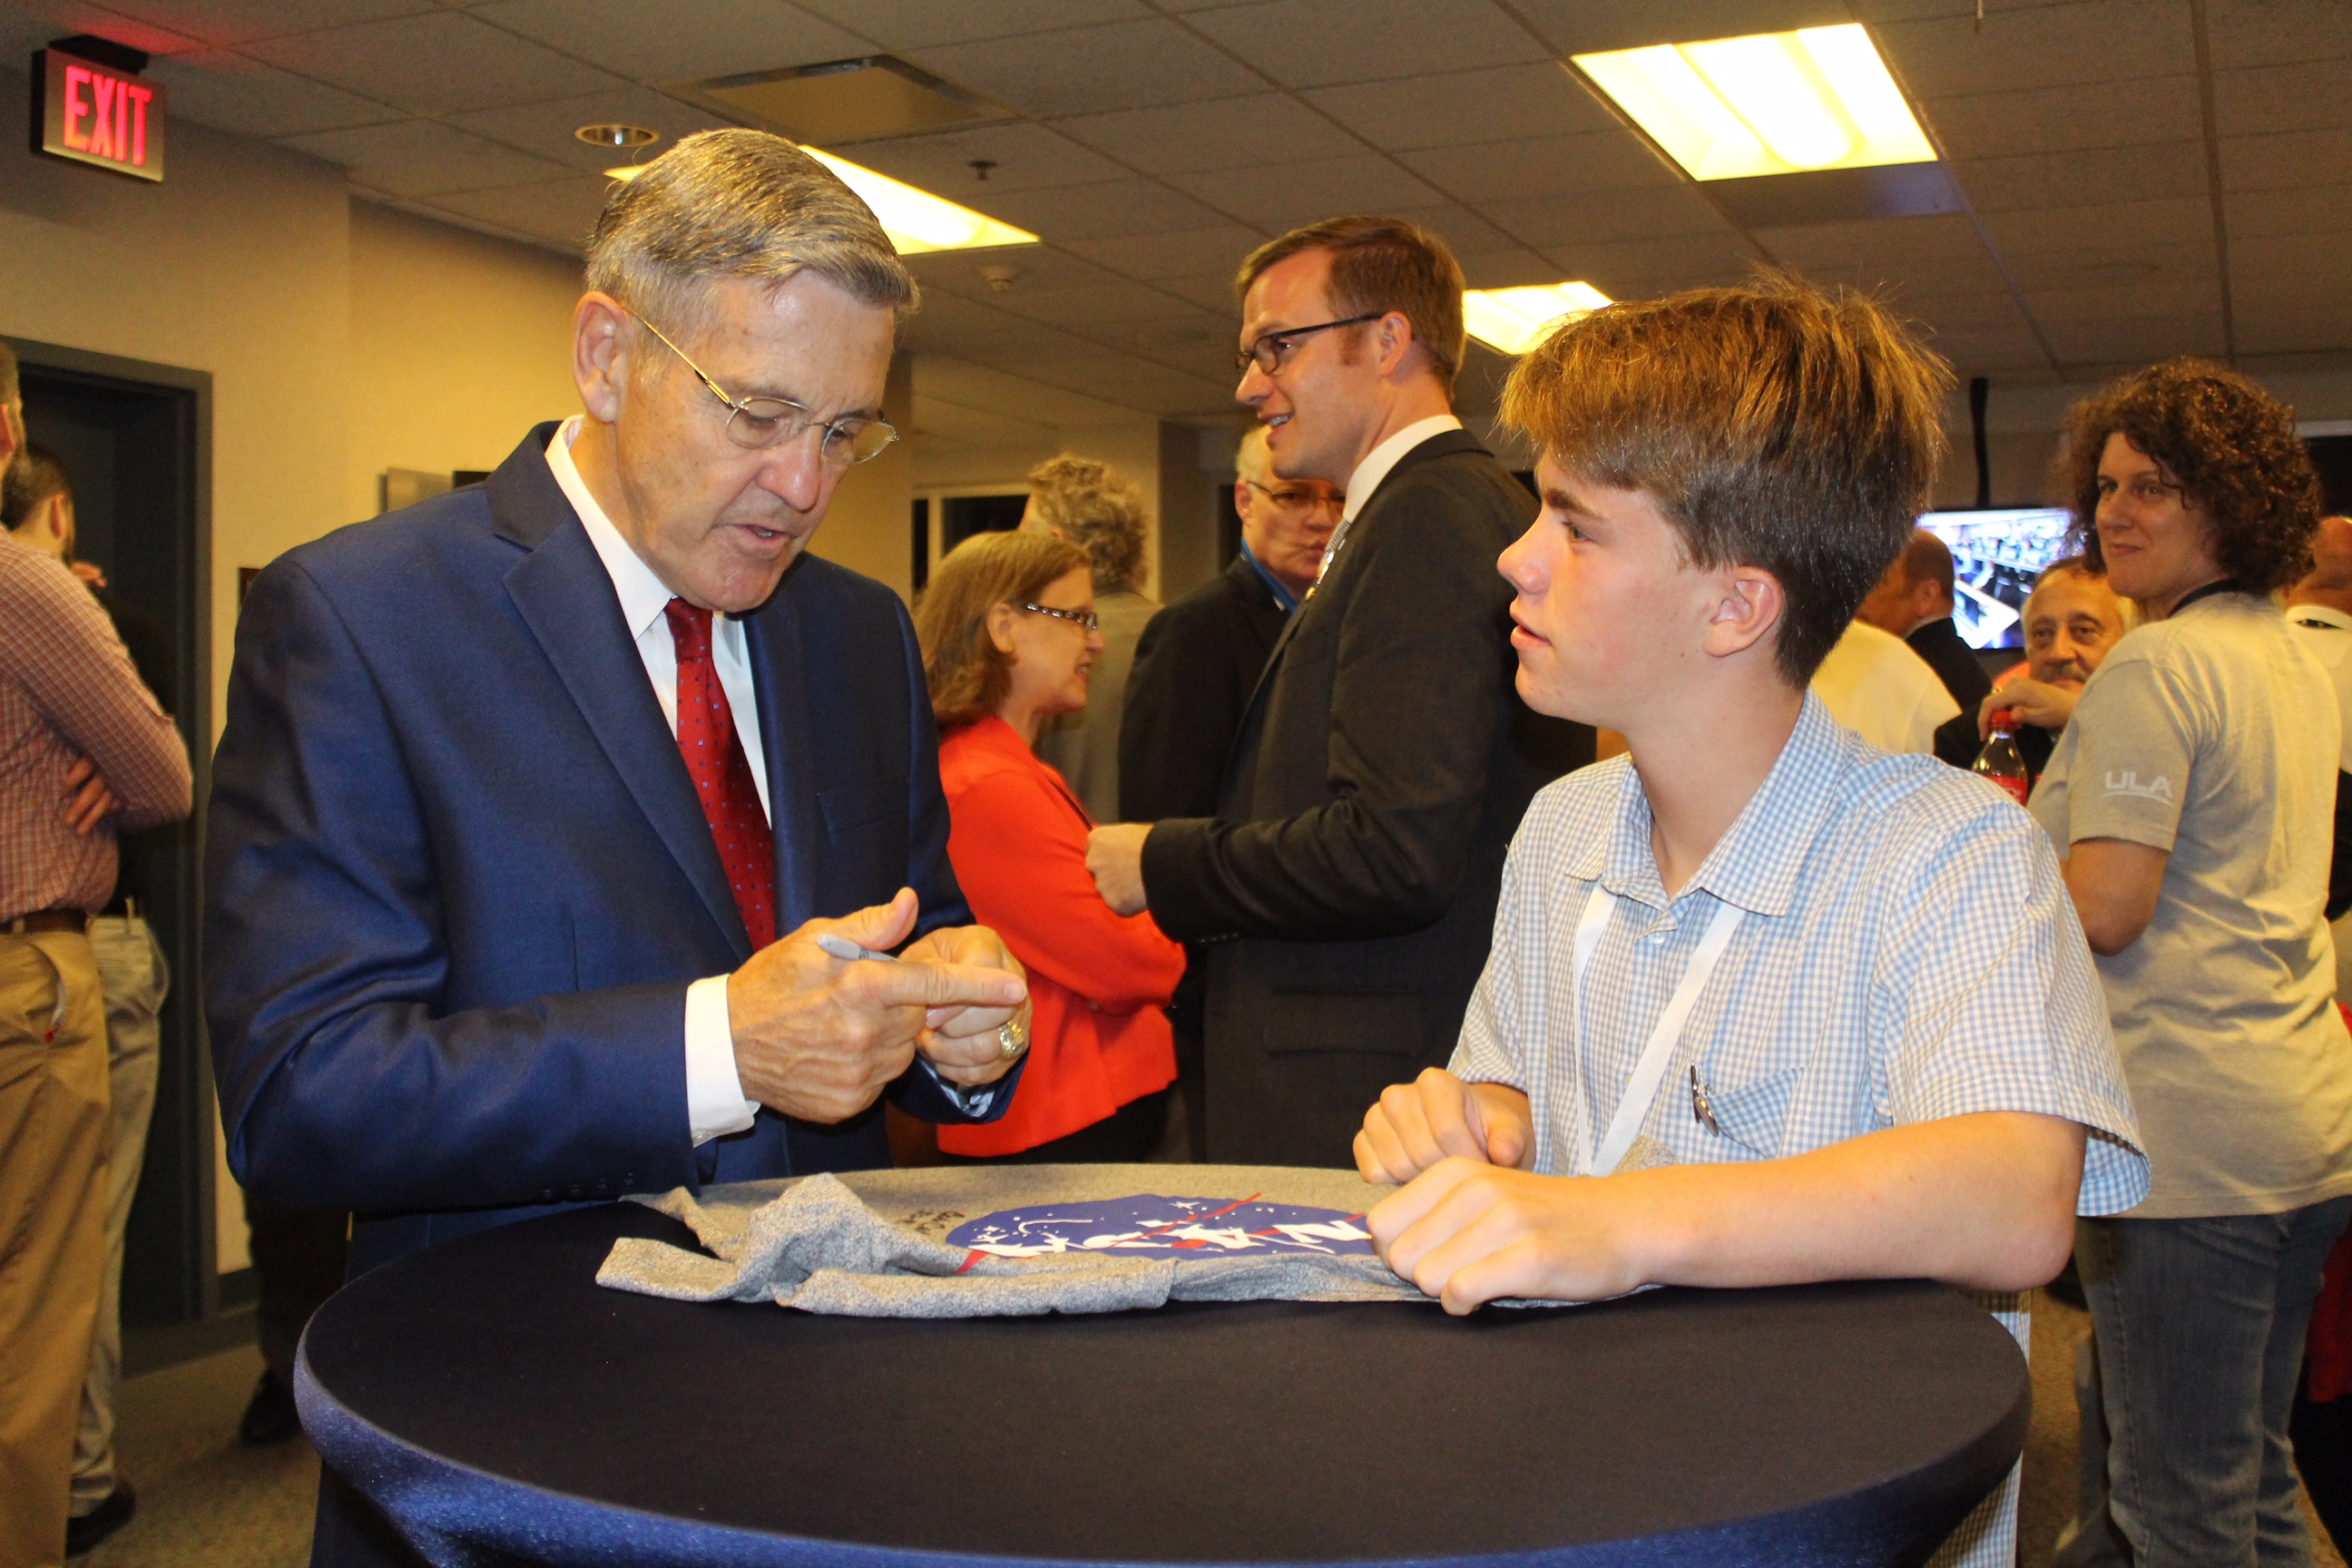 Ollie meeting the Director of Kennedy Space Centre and four time Astronaut, Bob Cabana.